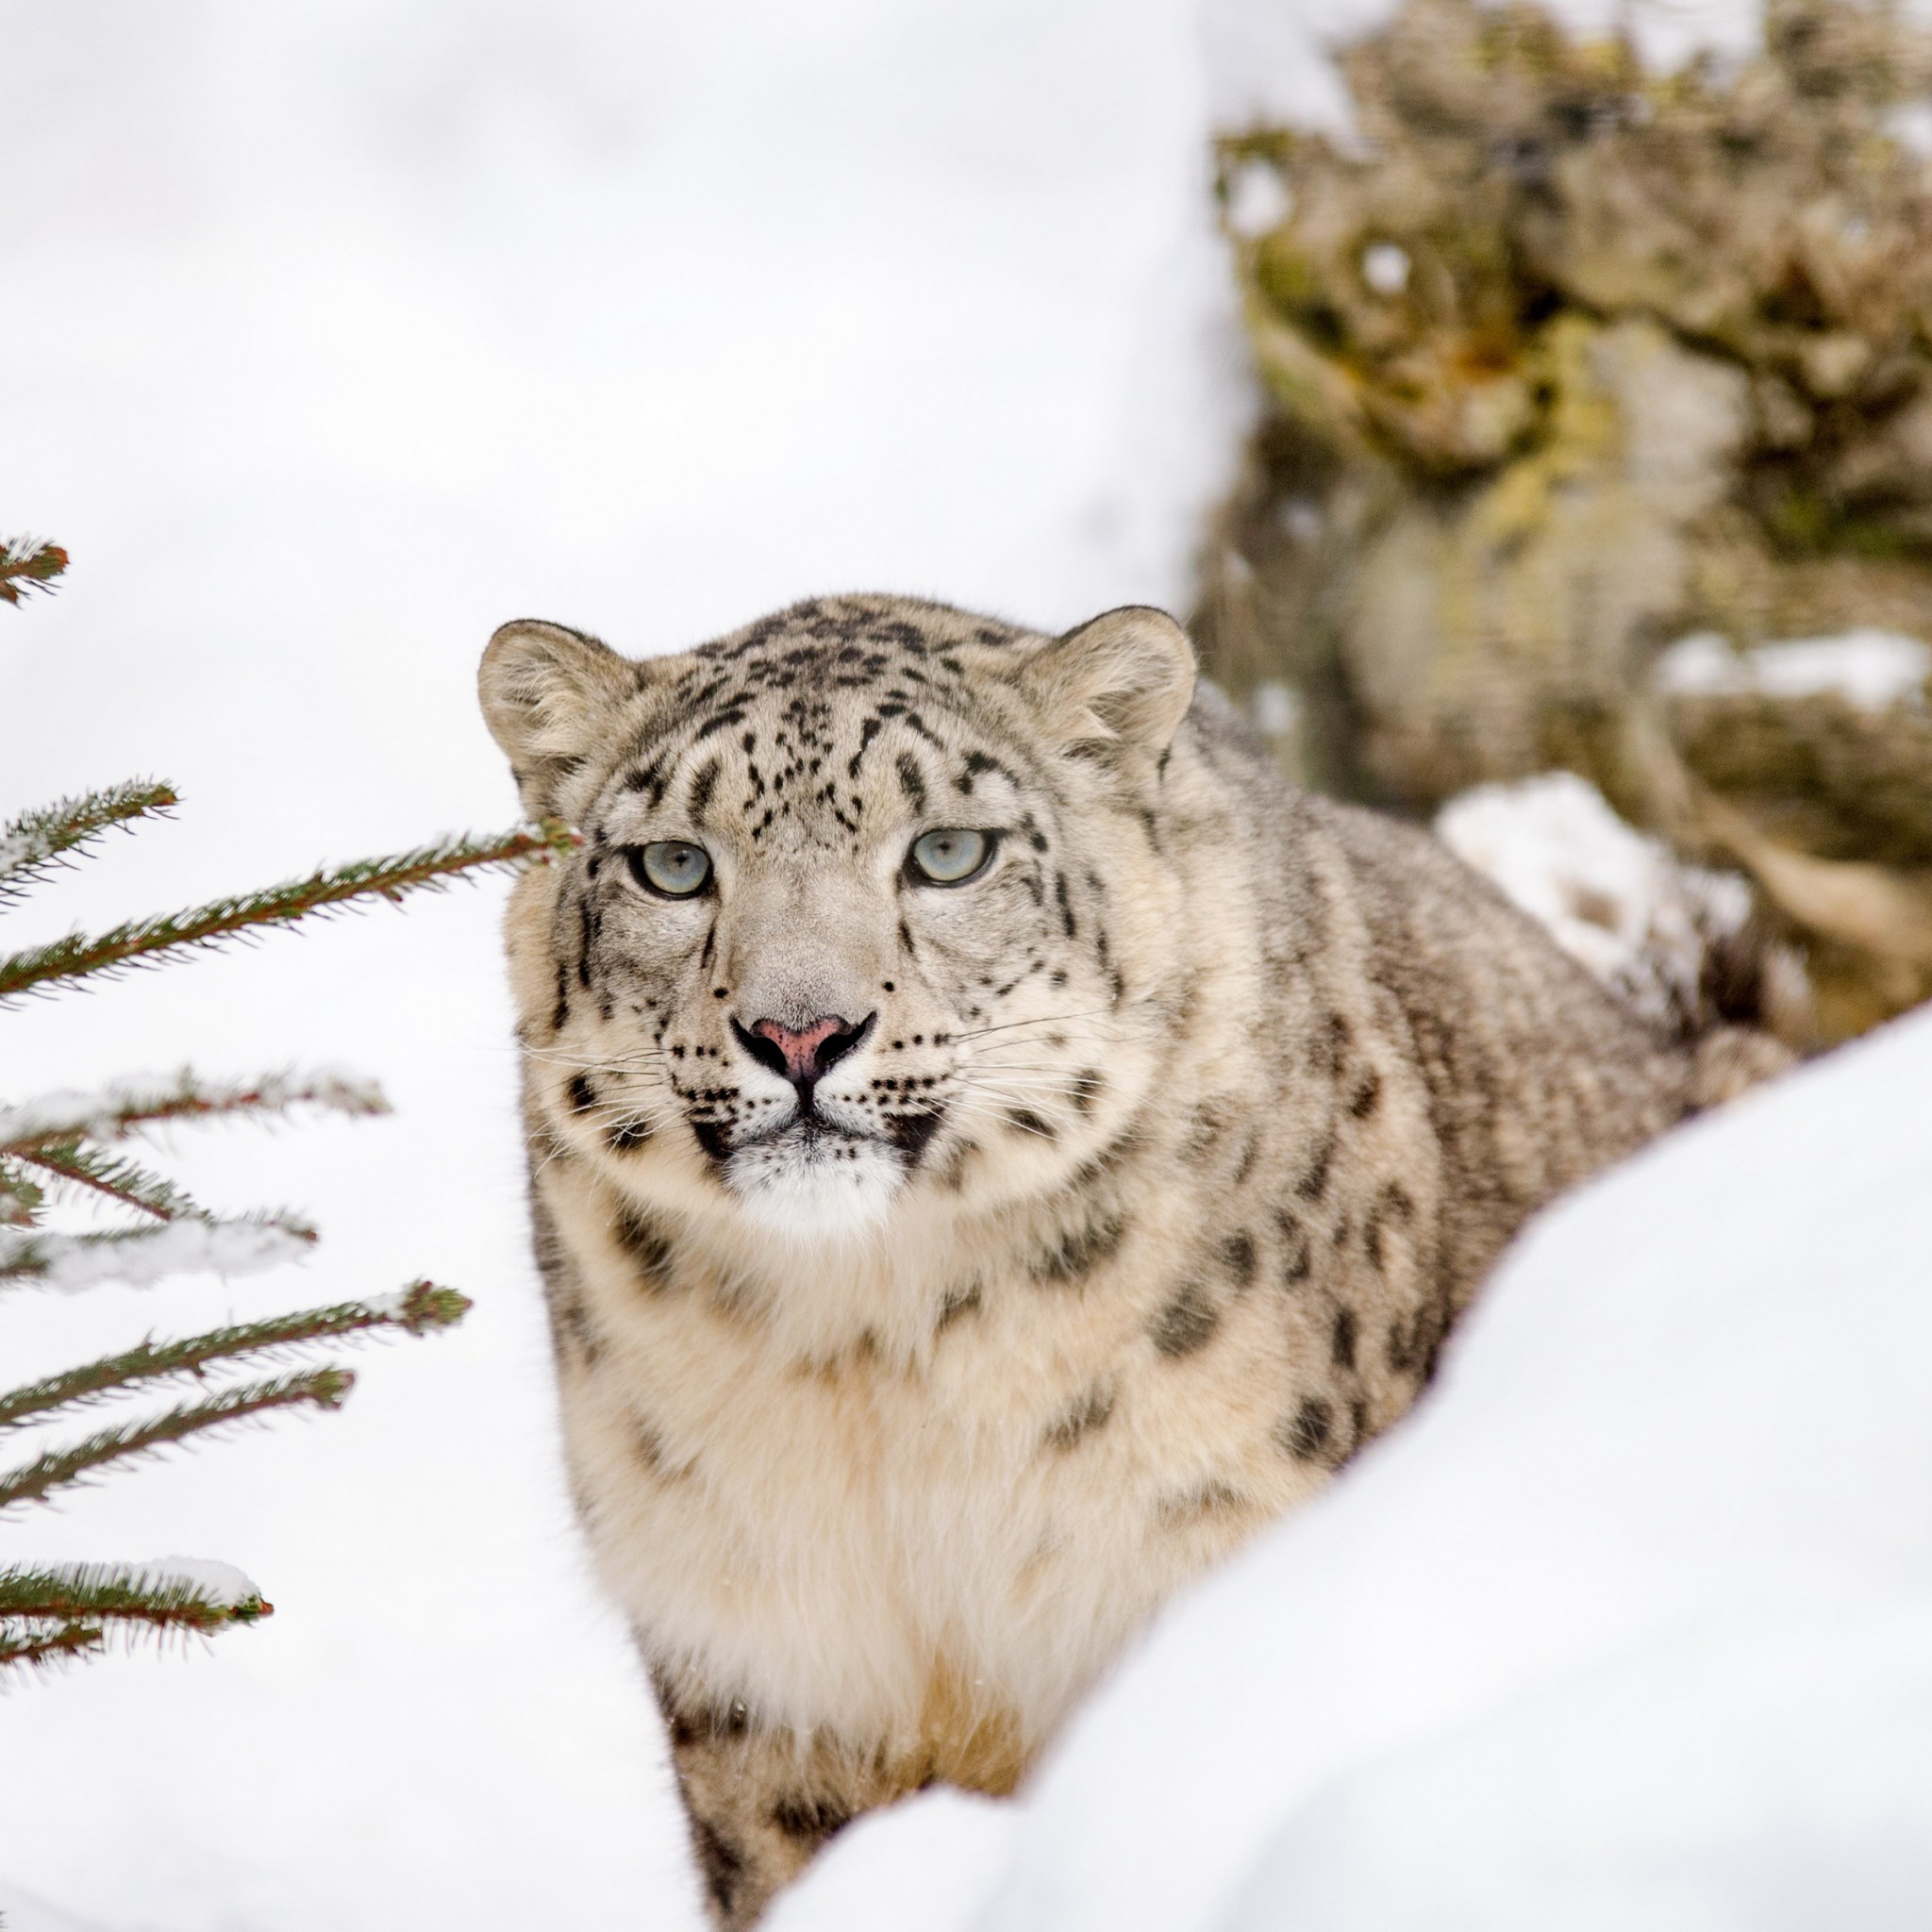 Snow leopard wallpaper 2048x2048